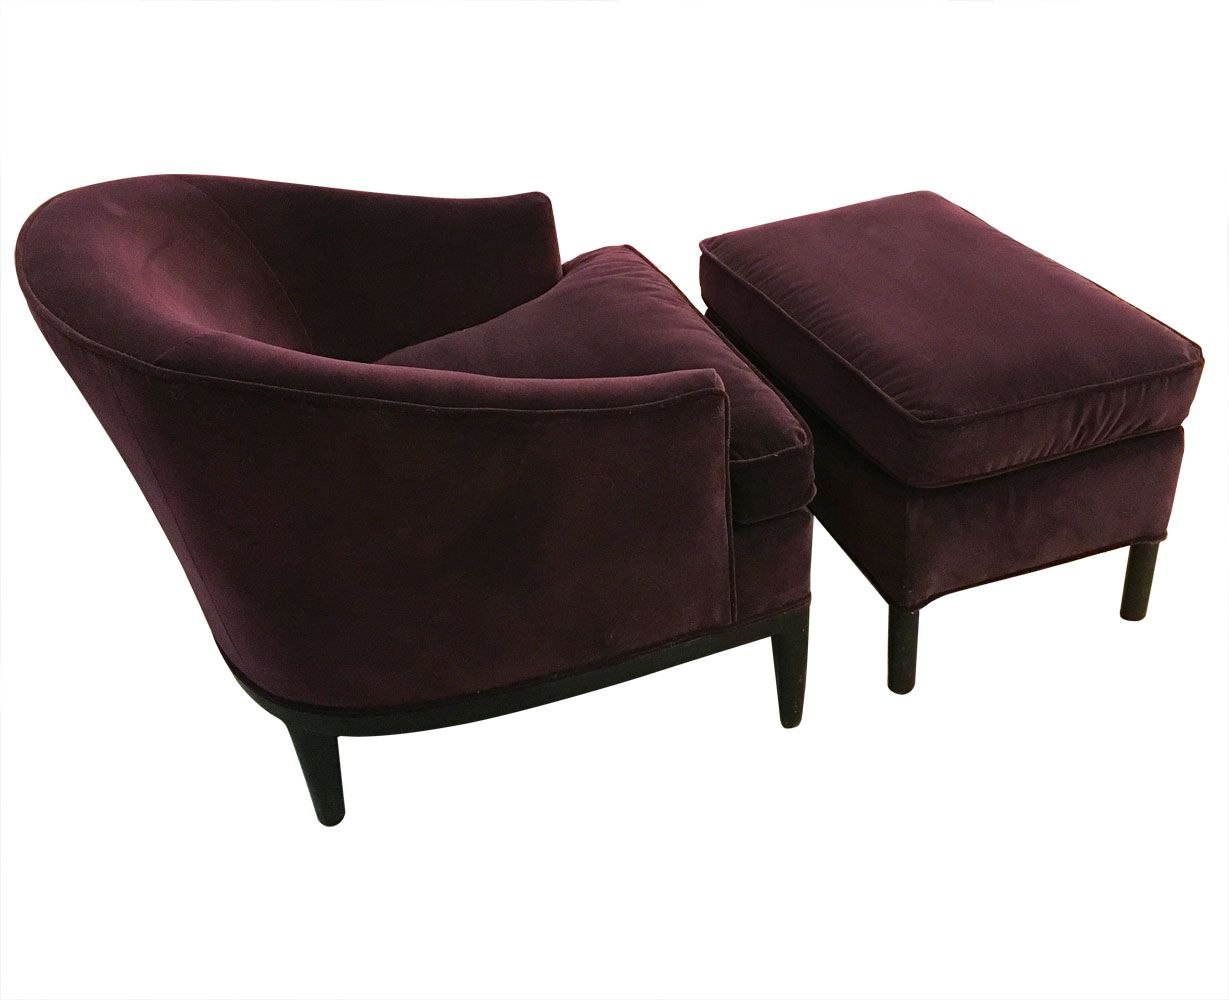 Upholstered chair ottoman by edward wormley for dunbar 1960s for sale at pamono - Edward wormley chairs ...